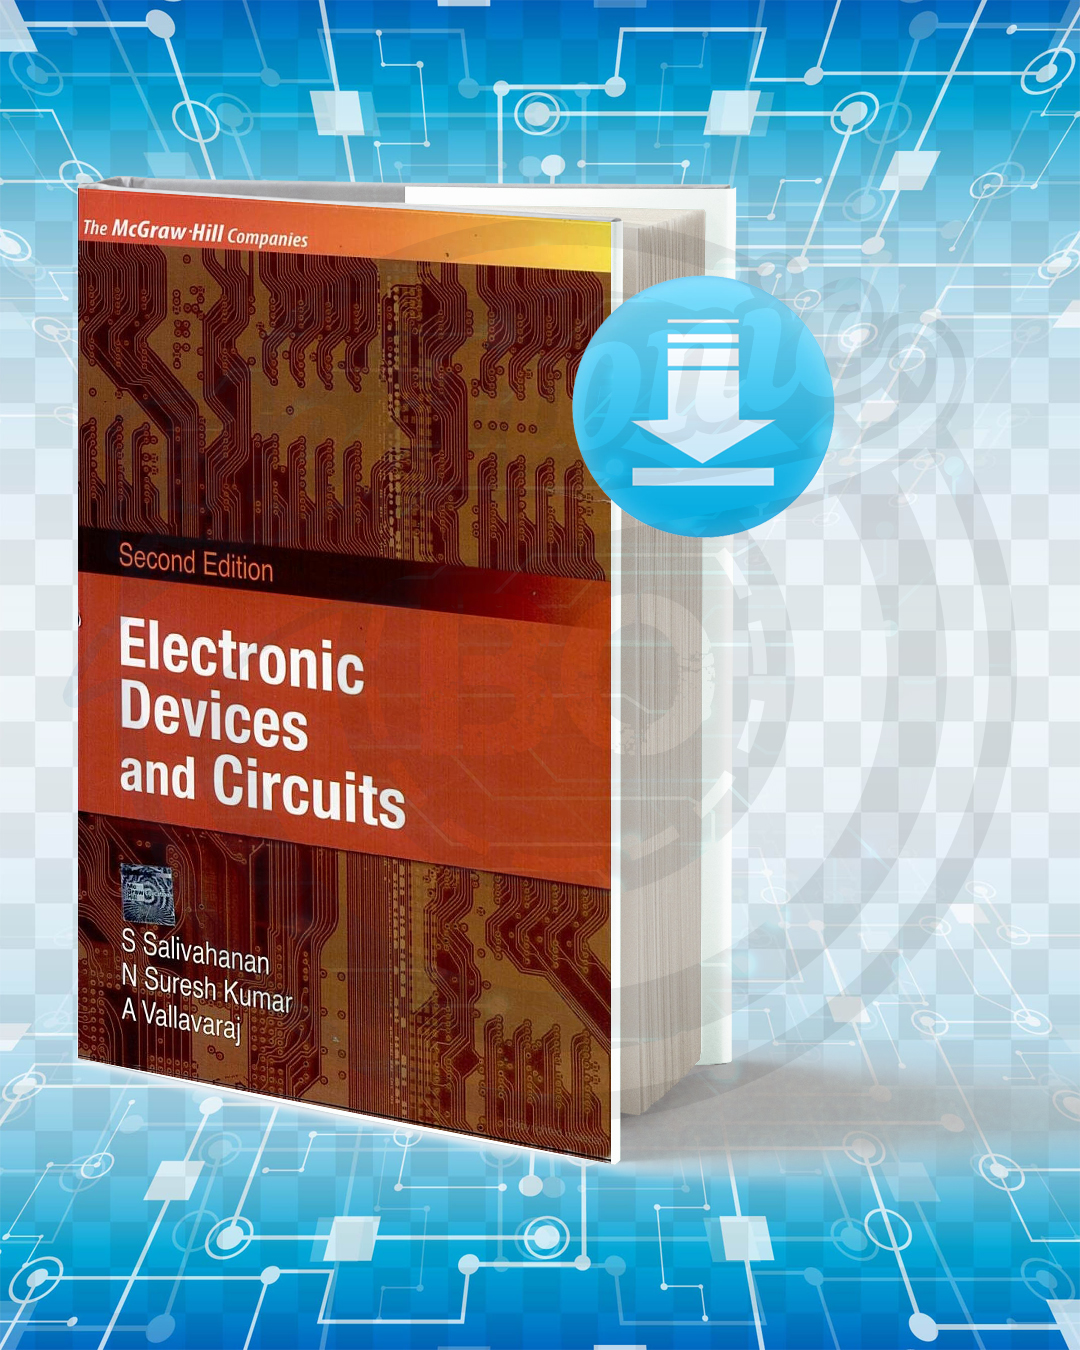 Free Book Electronic Devices and Circuits pdf.